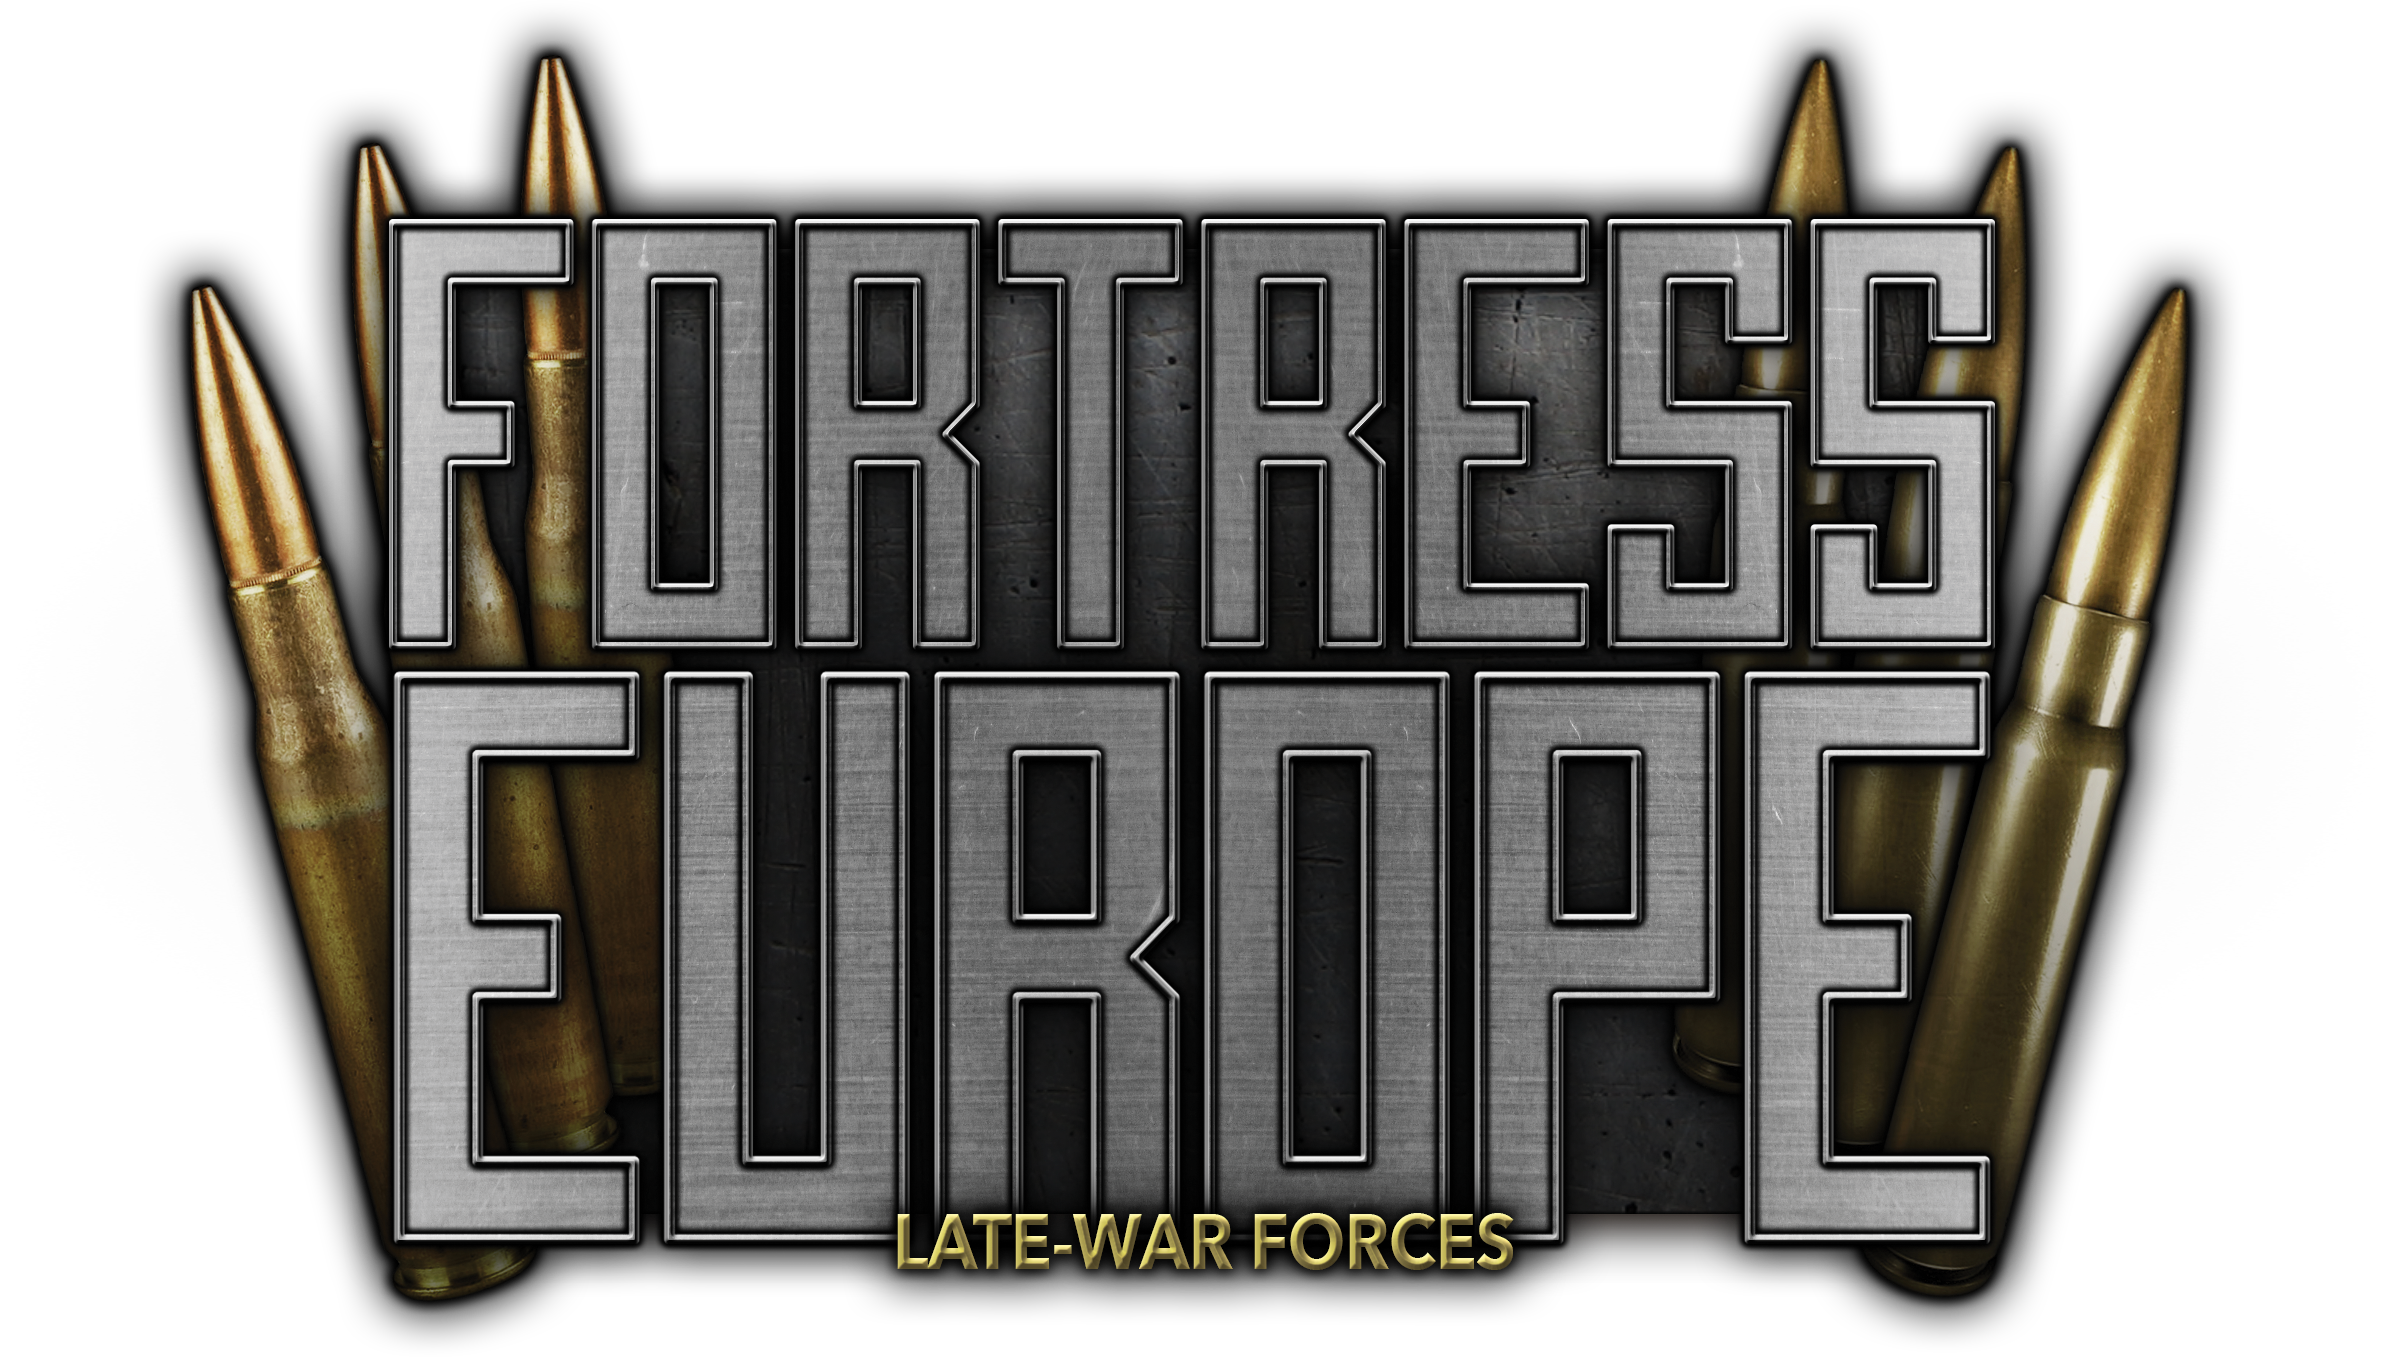 Fortress Europe: Late-war Forces